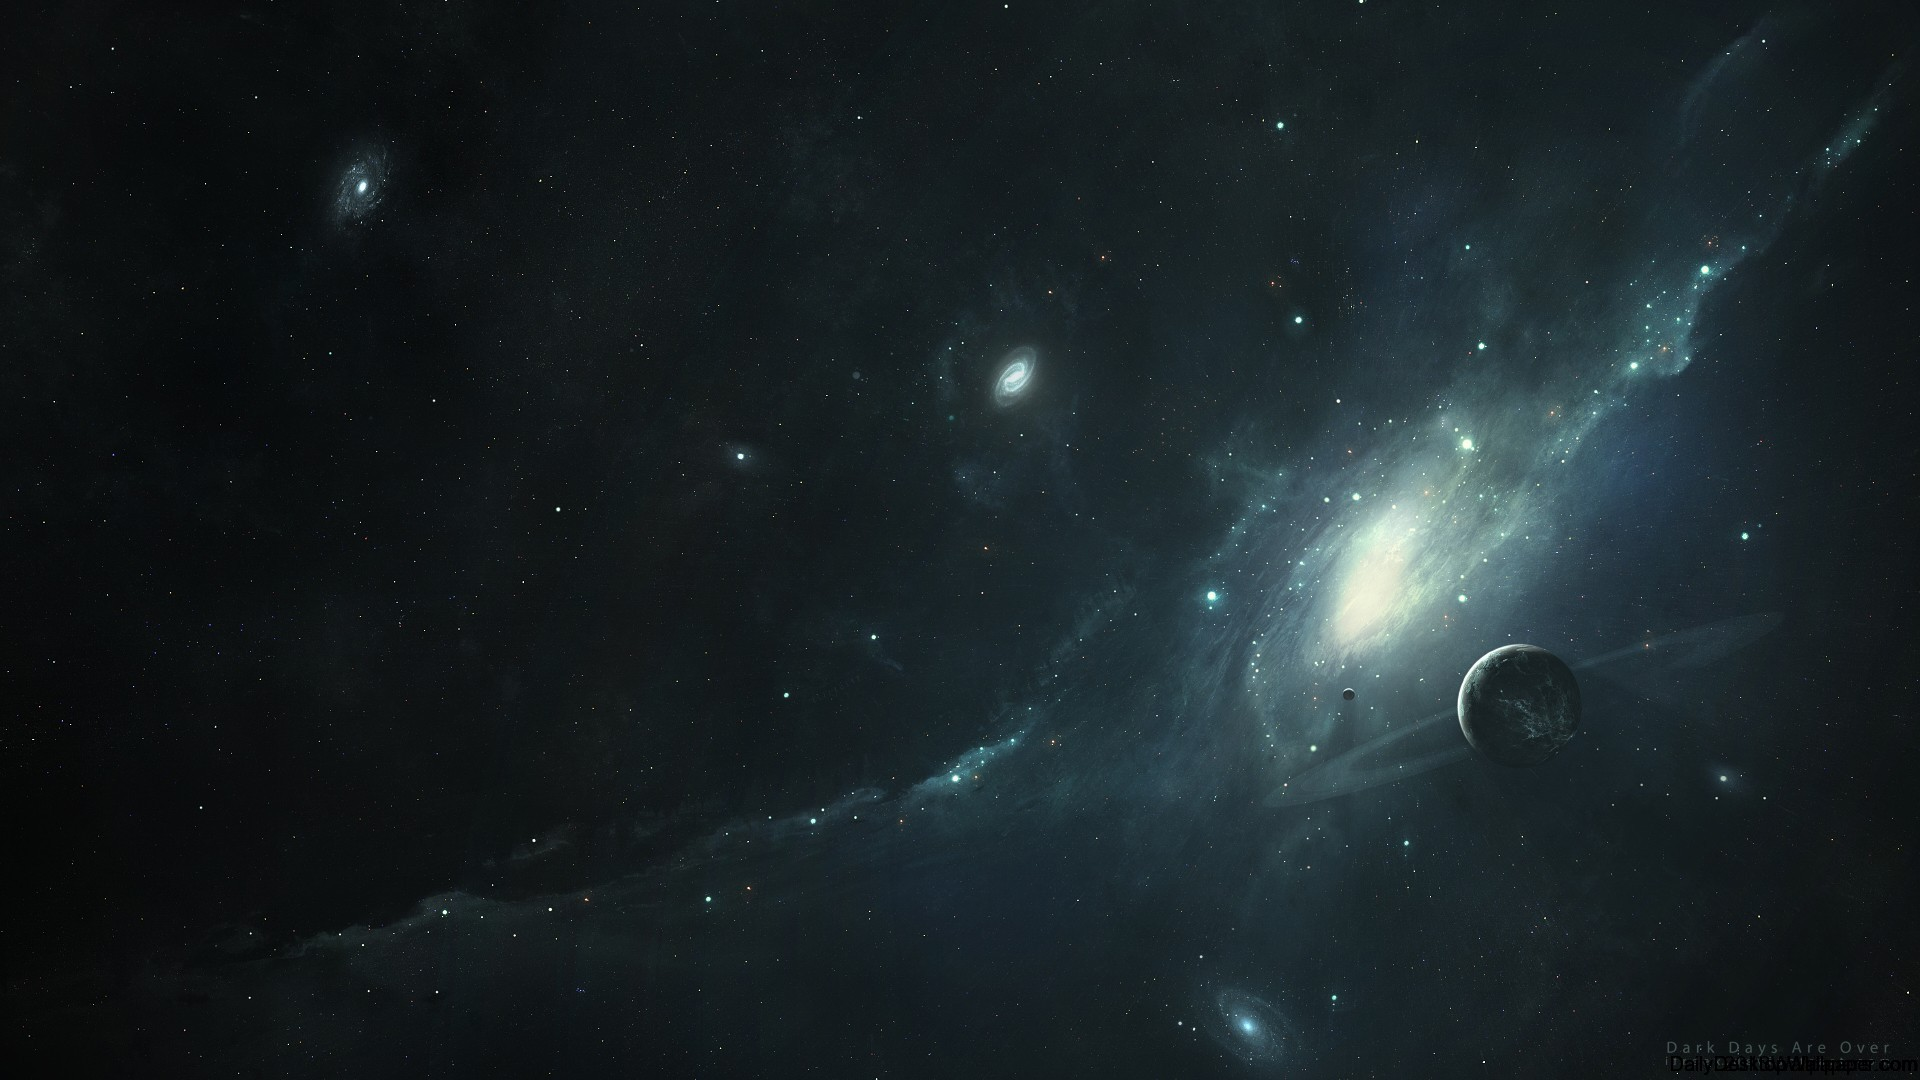 Outer Space Wallpaper 1920x1080 Images amp Pictures   Becuo 1920x1080